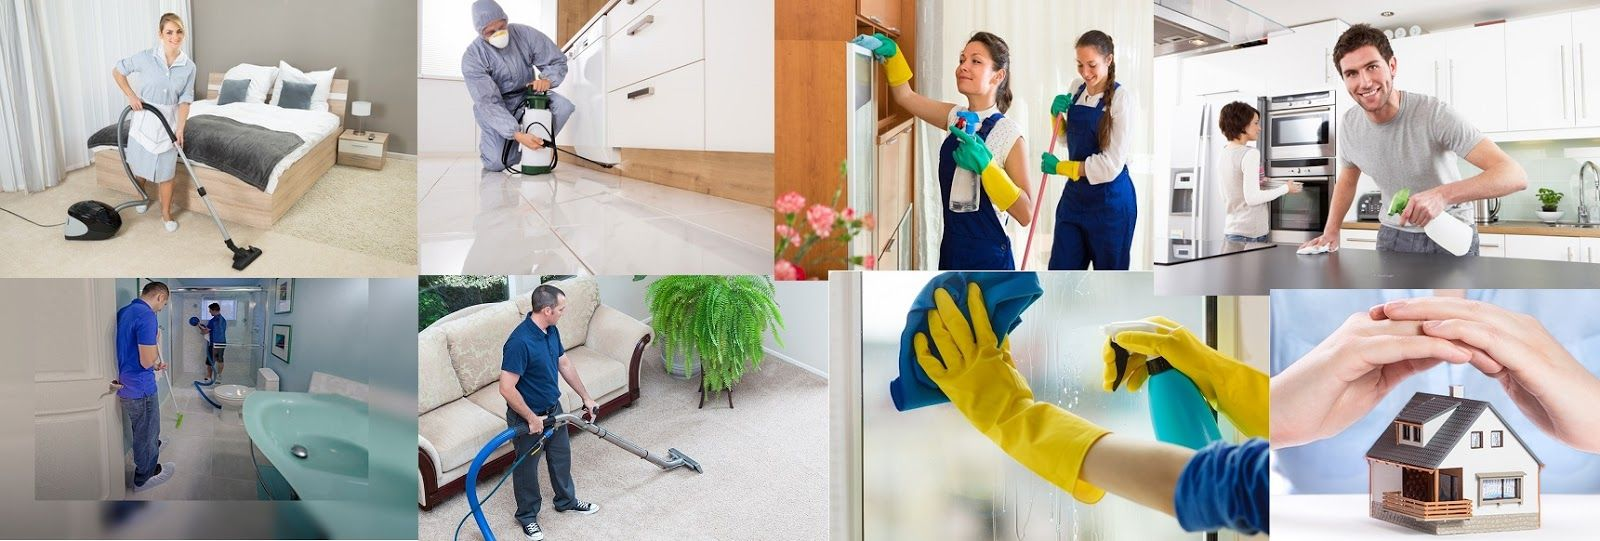 Top Professional Cleaning Company In Toowoomba Brisbane Ipswich Cleaning Service Professional Cleaning Cleaning